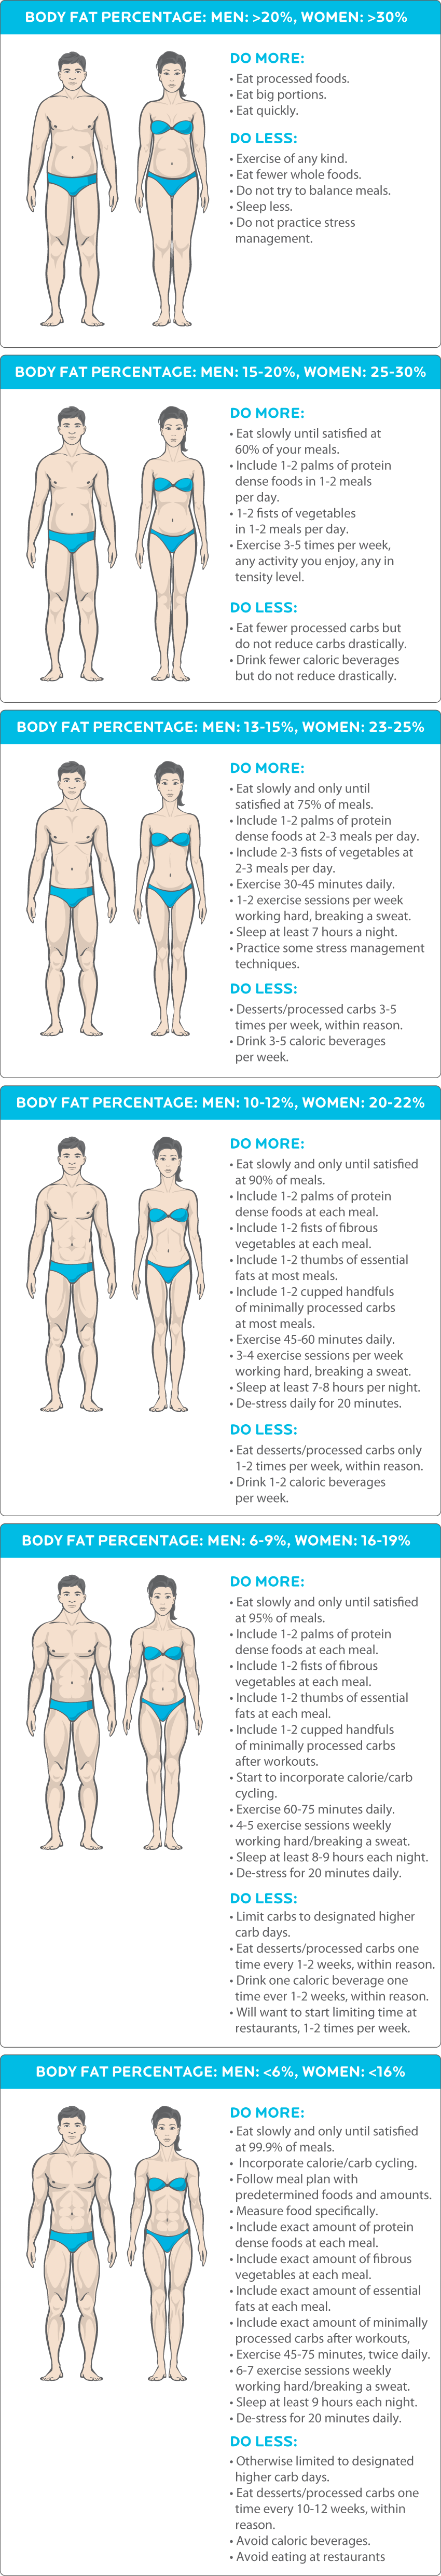 what percentage body fat will your abs start to show